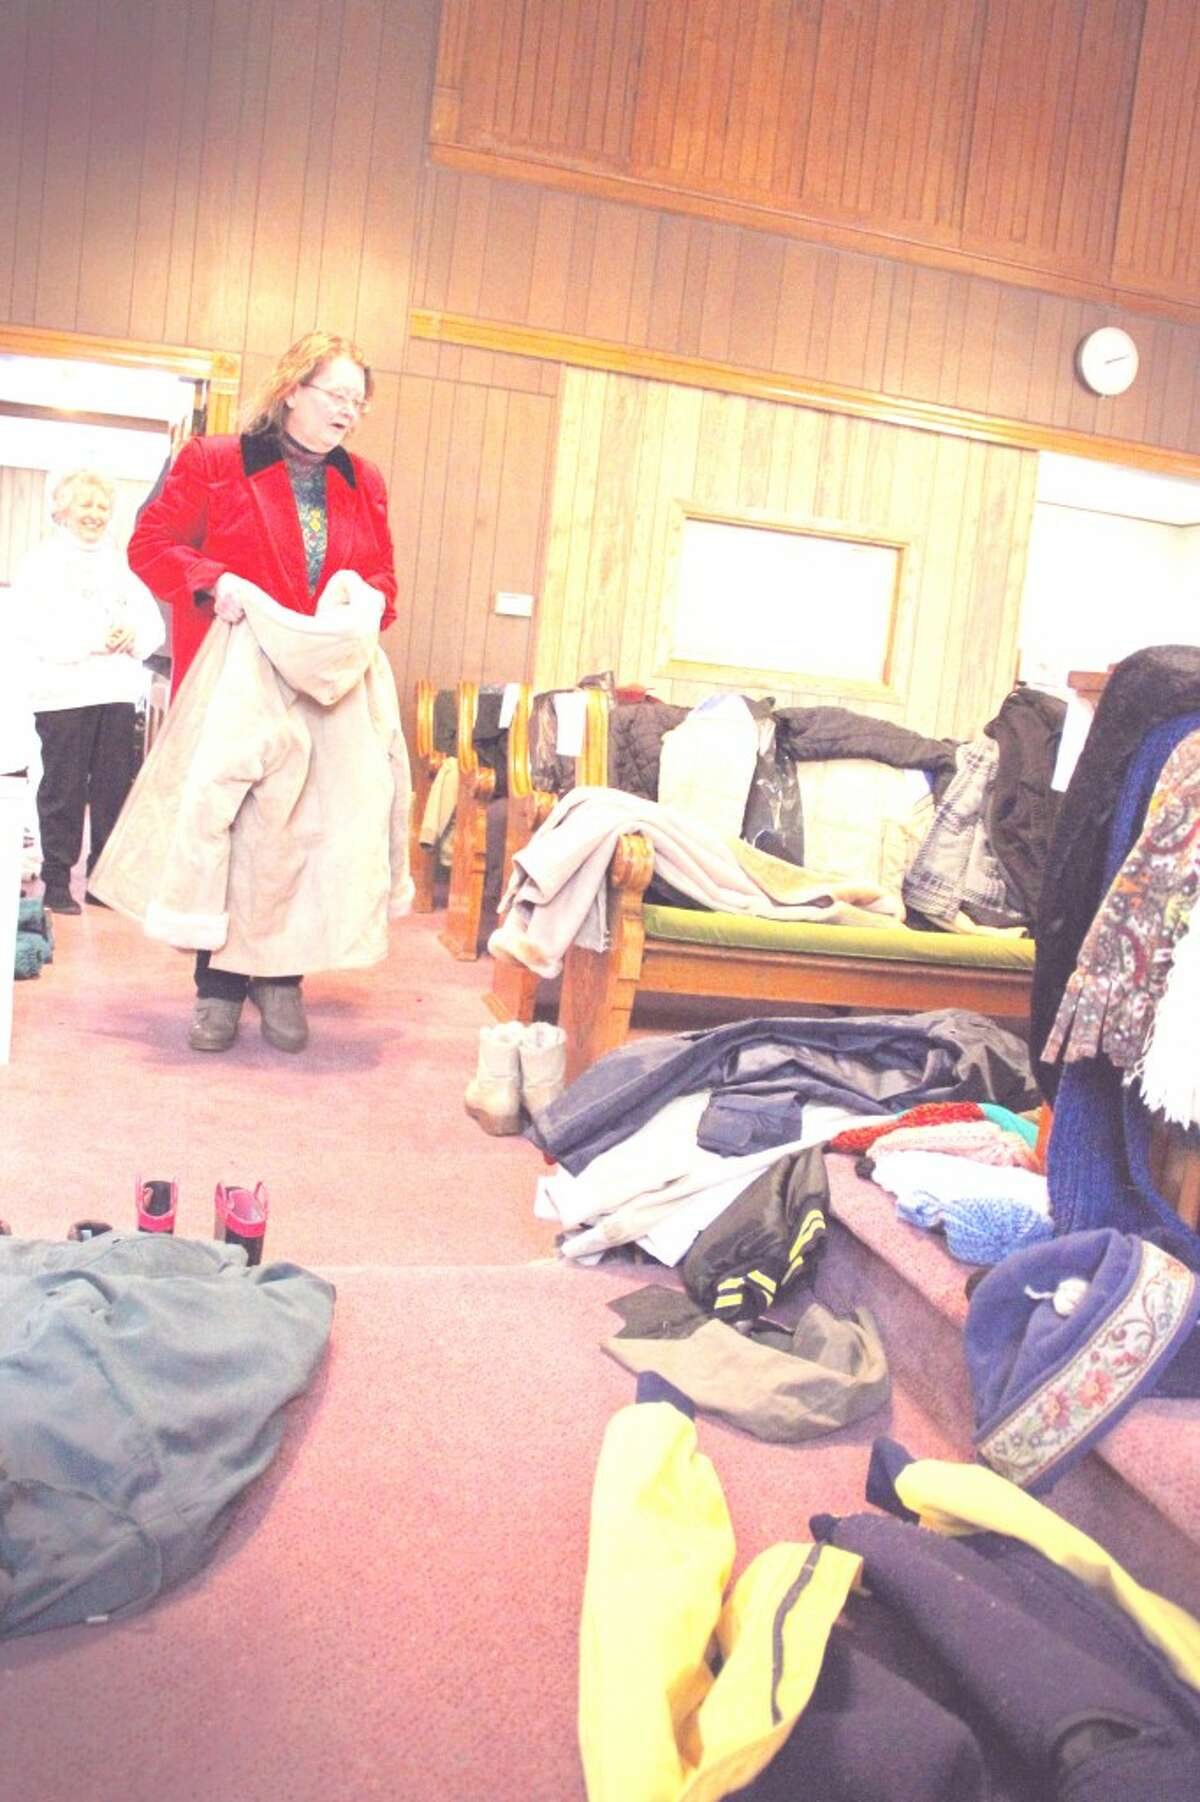 FREE COATS: Ivy LuuKkonen looks at some coats at the former Seventh Day Aventist Church in Reed City. The Reed City Area Ministerial Association gives away free winter coats, hats and mittens to those in need from 2 to 4 p.m. every Tuesday. (Herald Review photo/Sarah Neubecker)